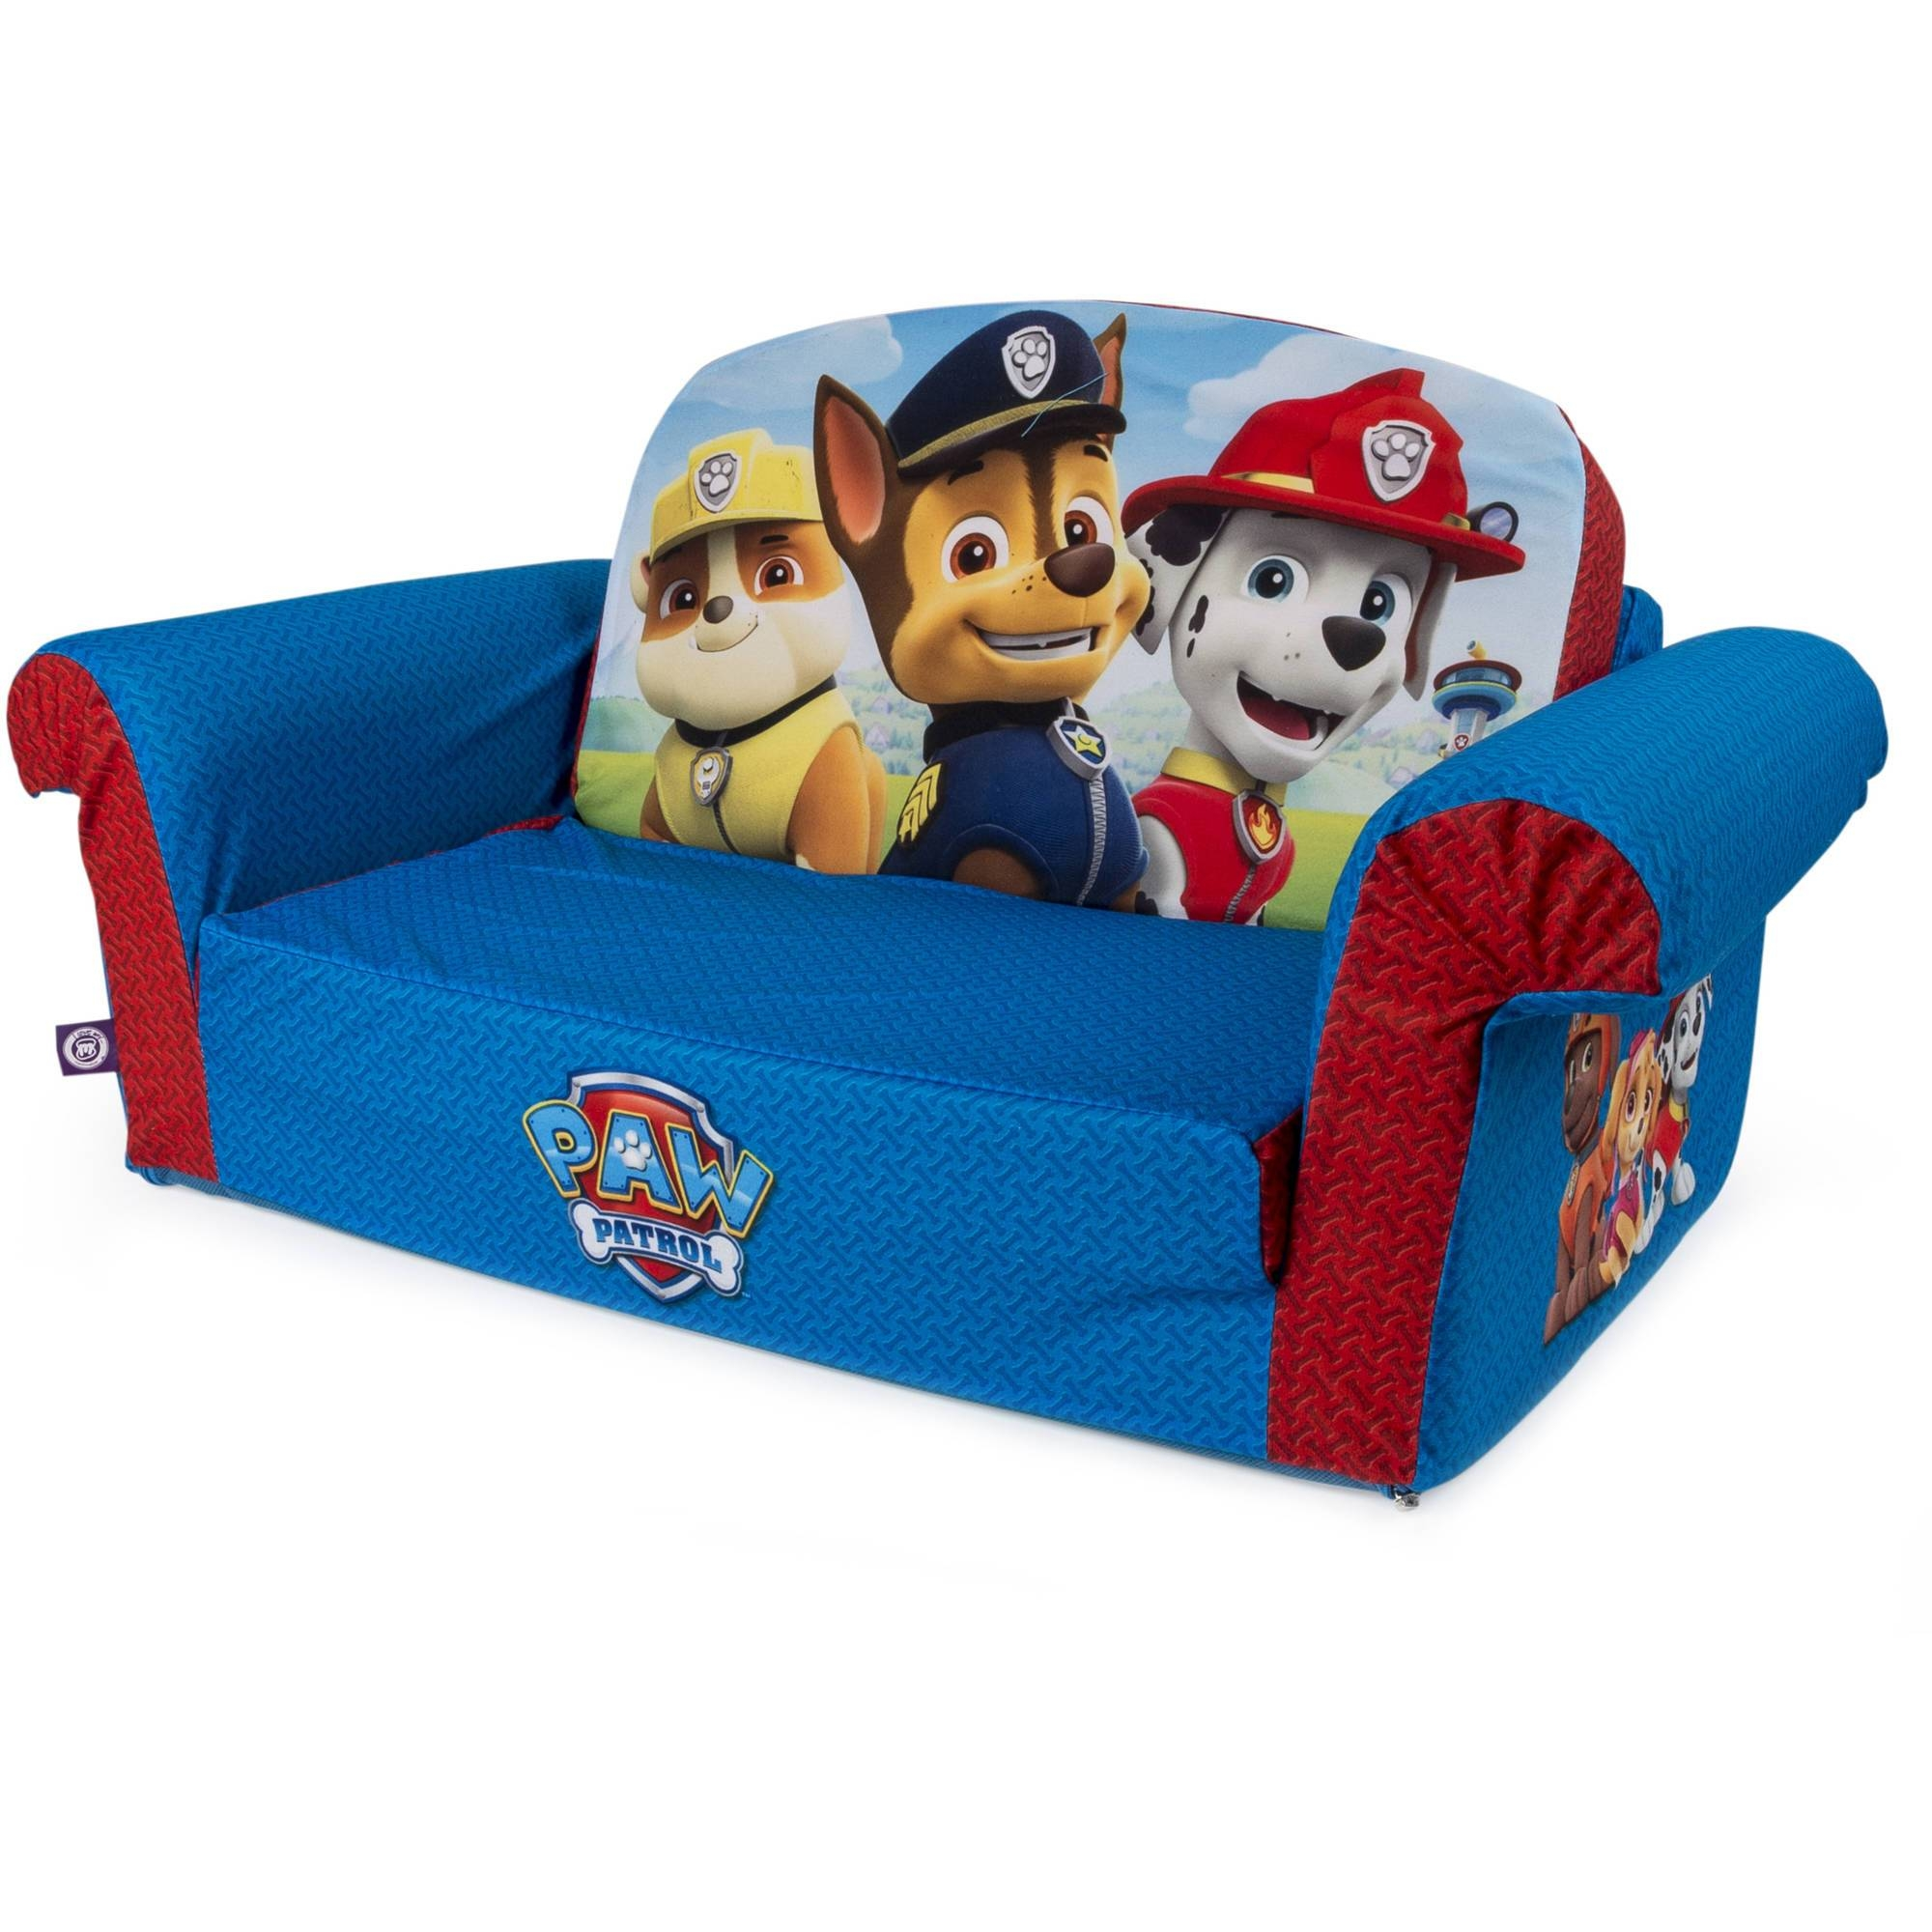 Marshmallow Furniture, Children's 2 In 1 Flip Open Foam Sofa Inside Childrens Sofa Bed Chairs (View 14 of 15)